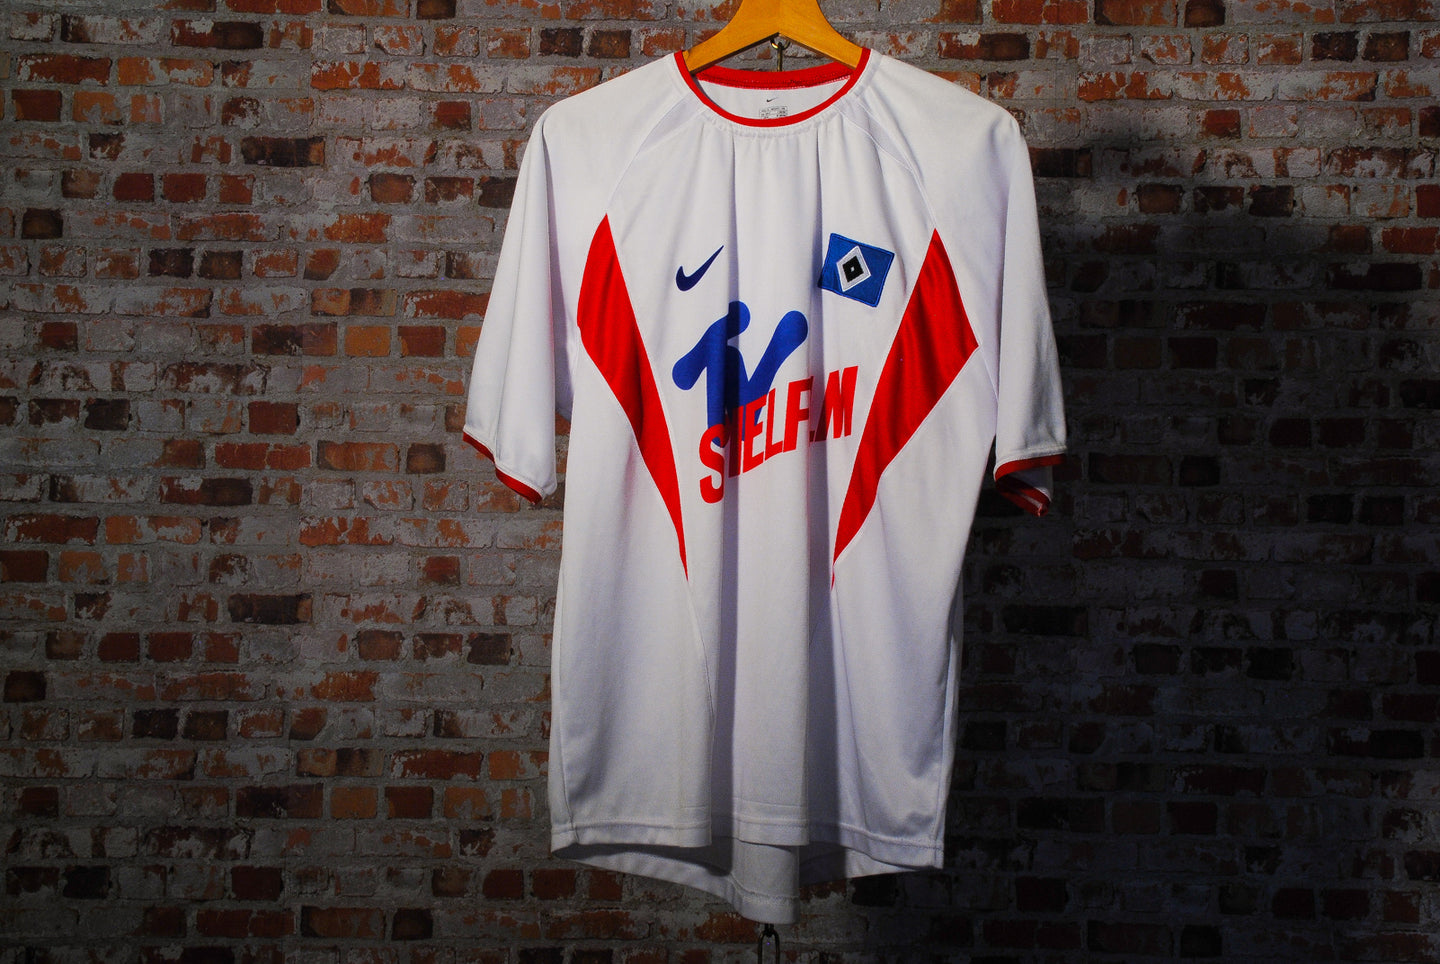 Retro Hamburg Soccer Jersey l Sponsored by Nike